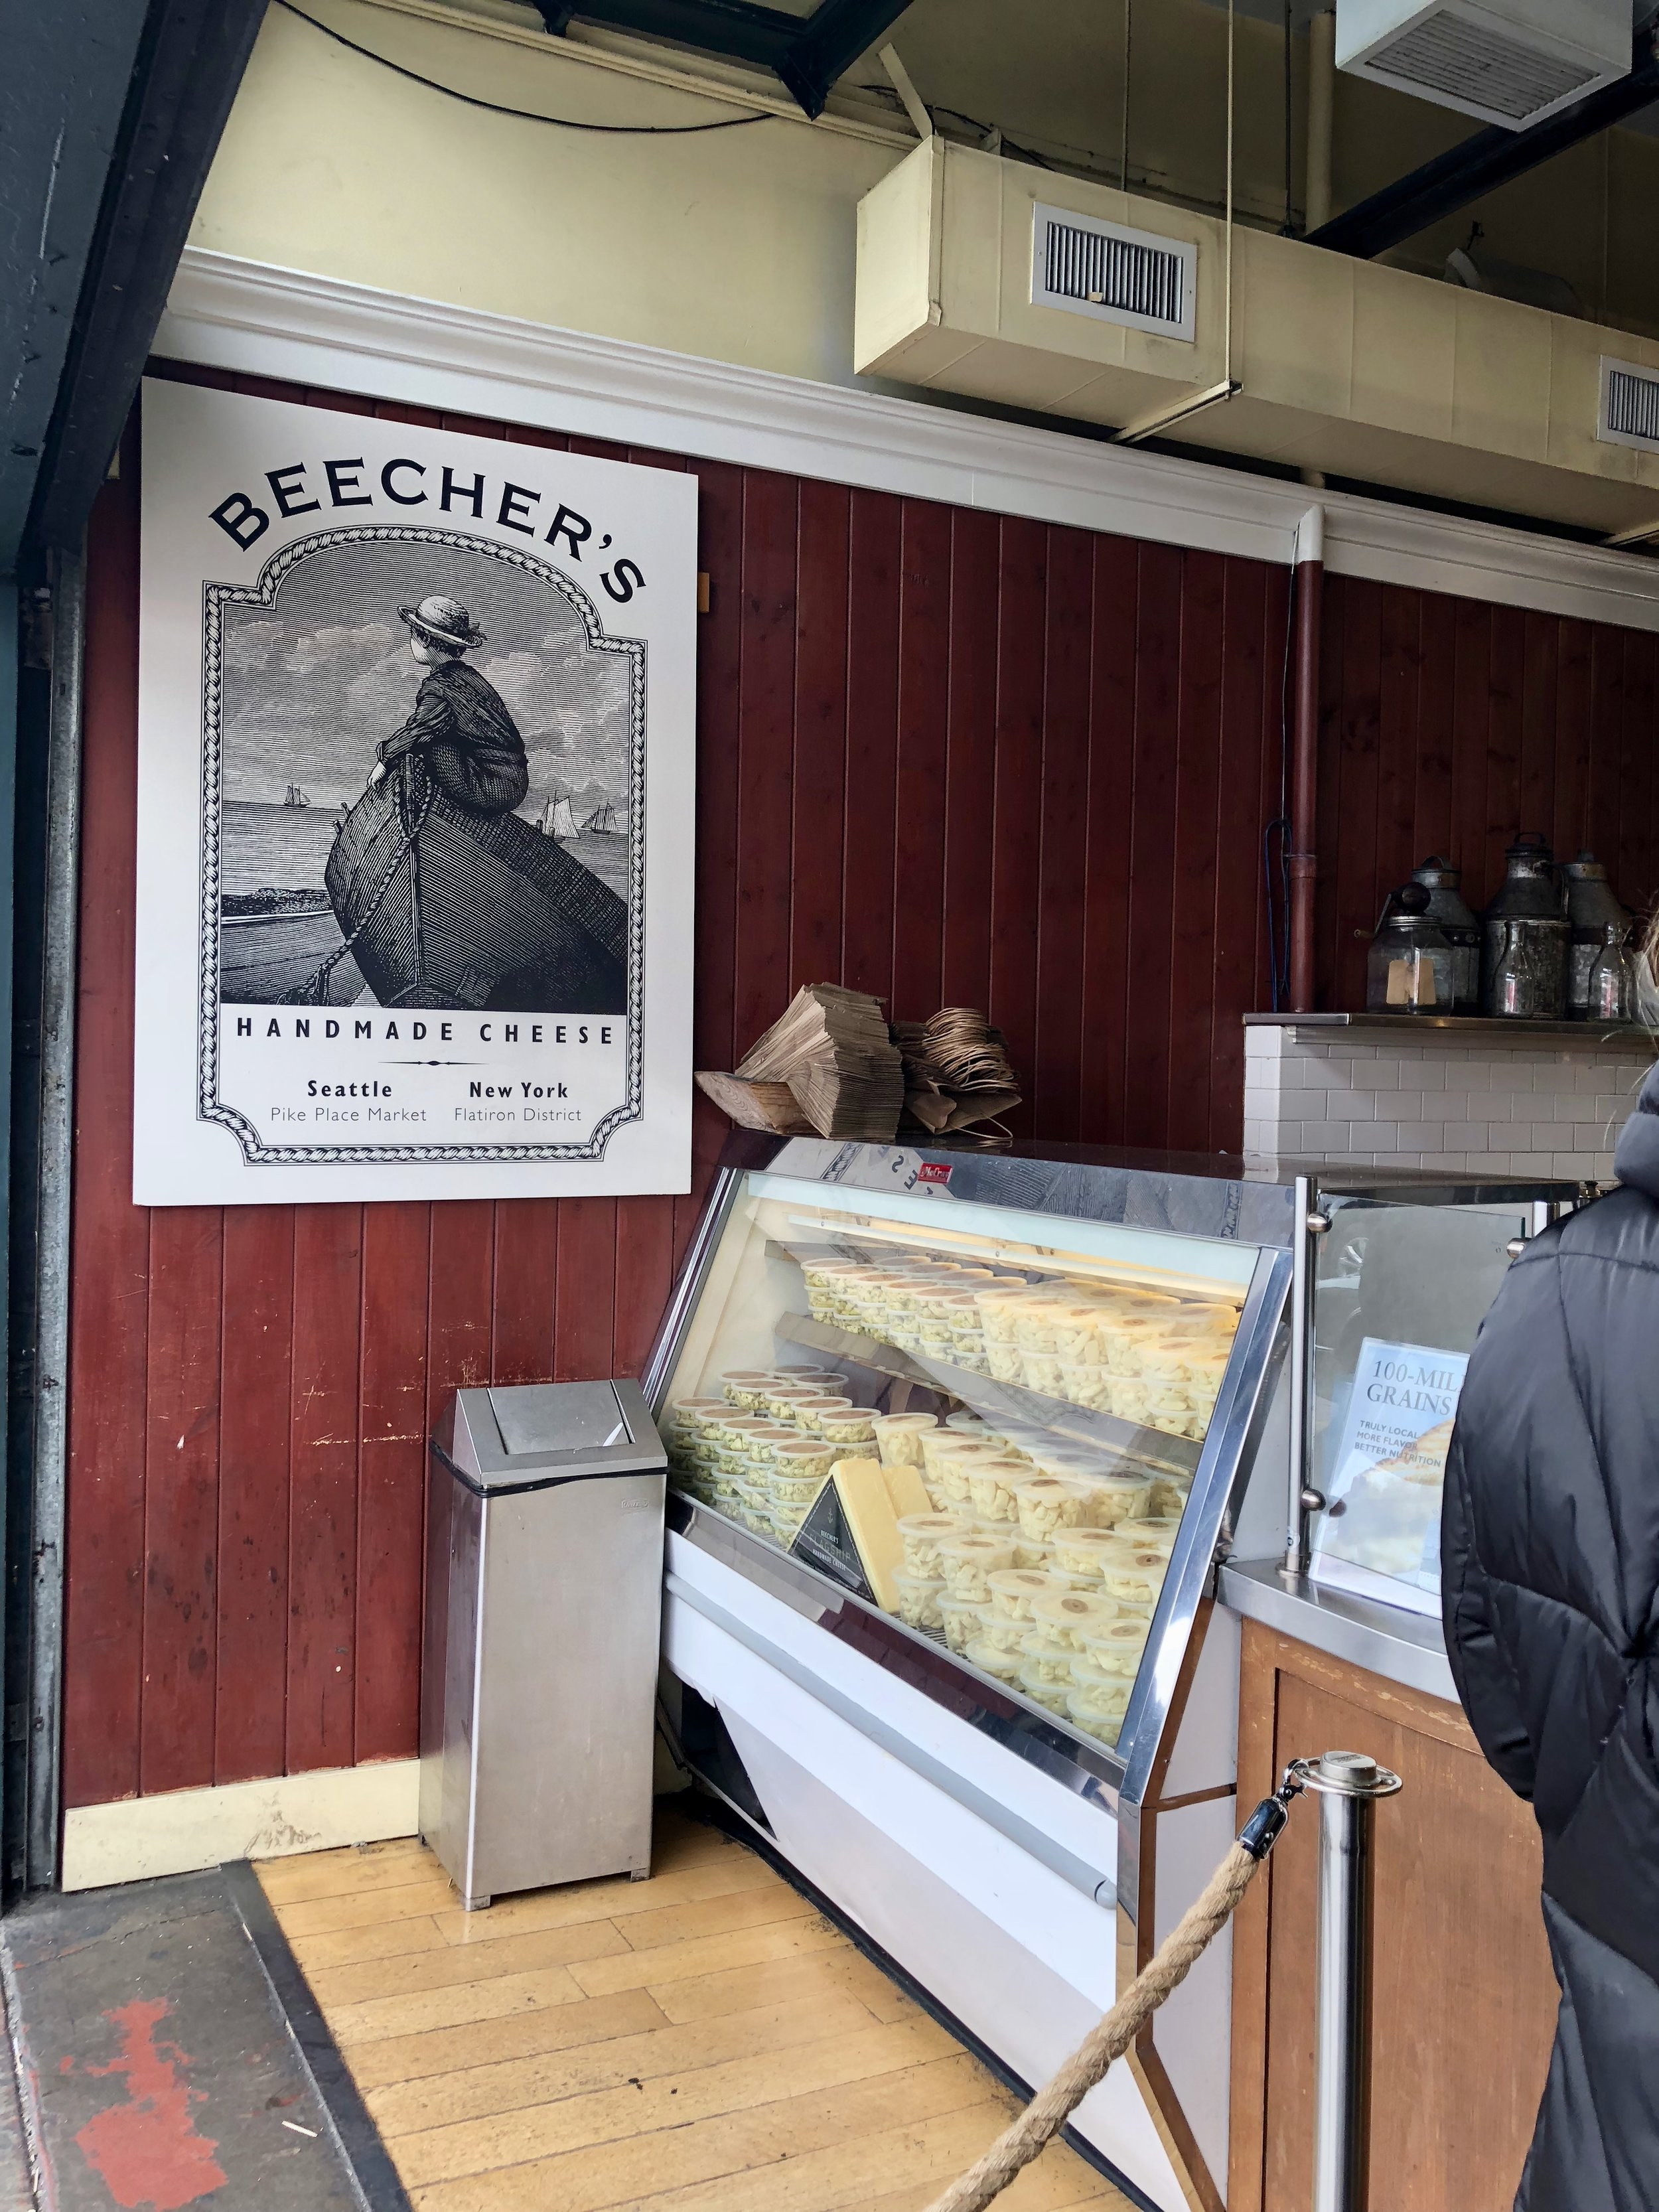 Beecher's Handmade Cheese -